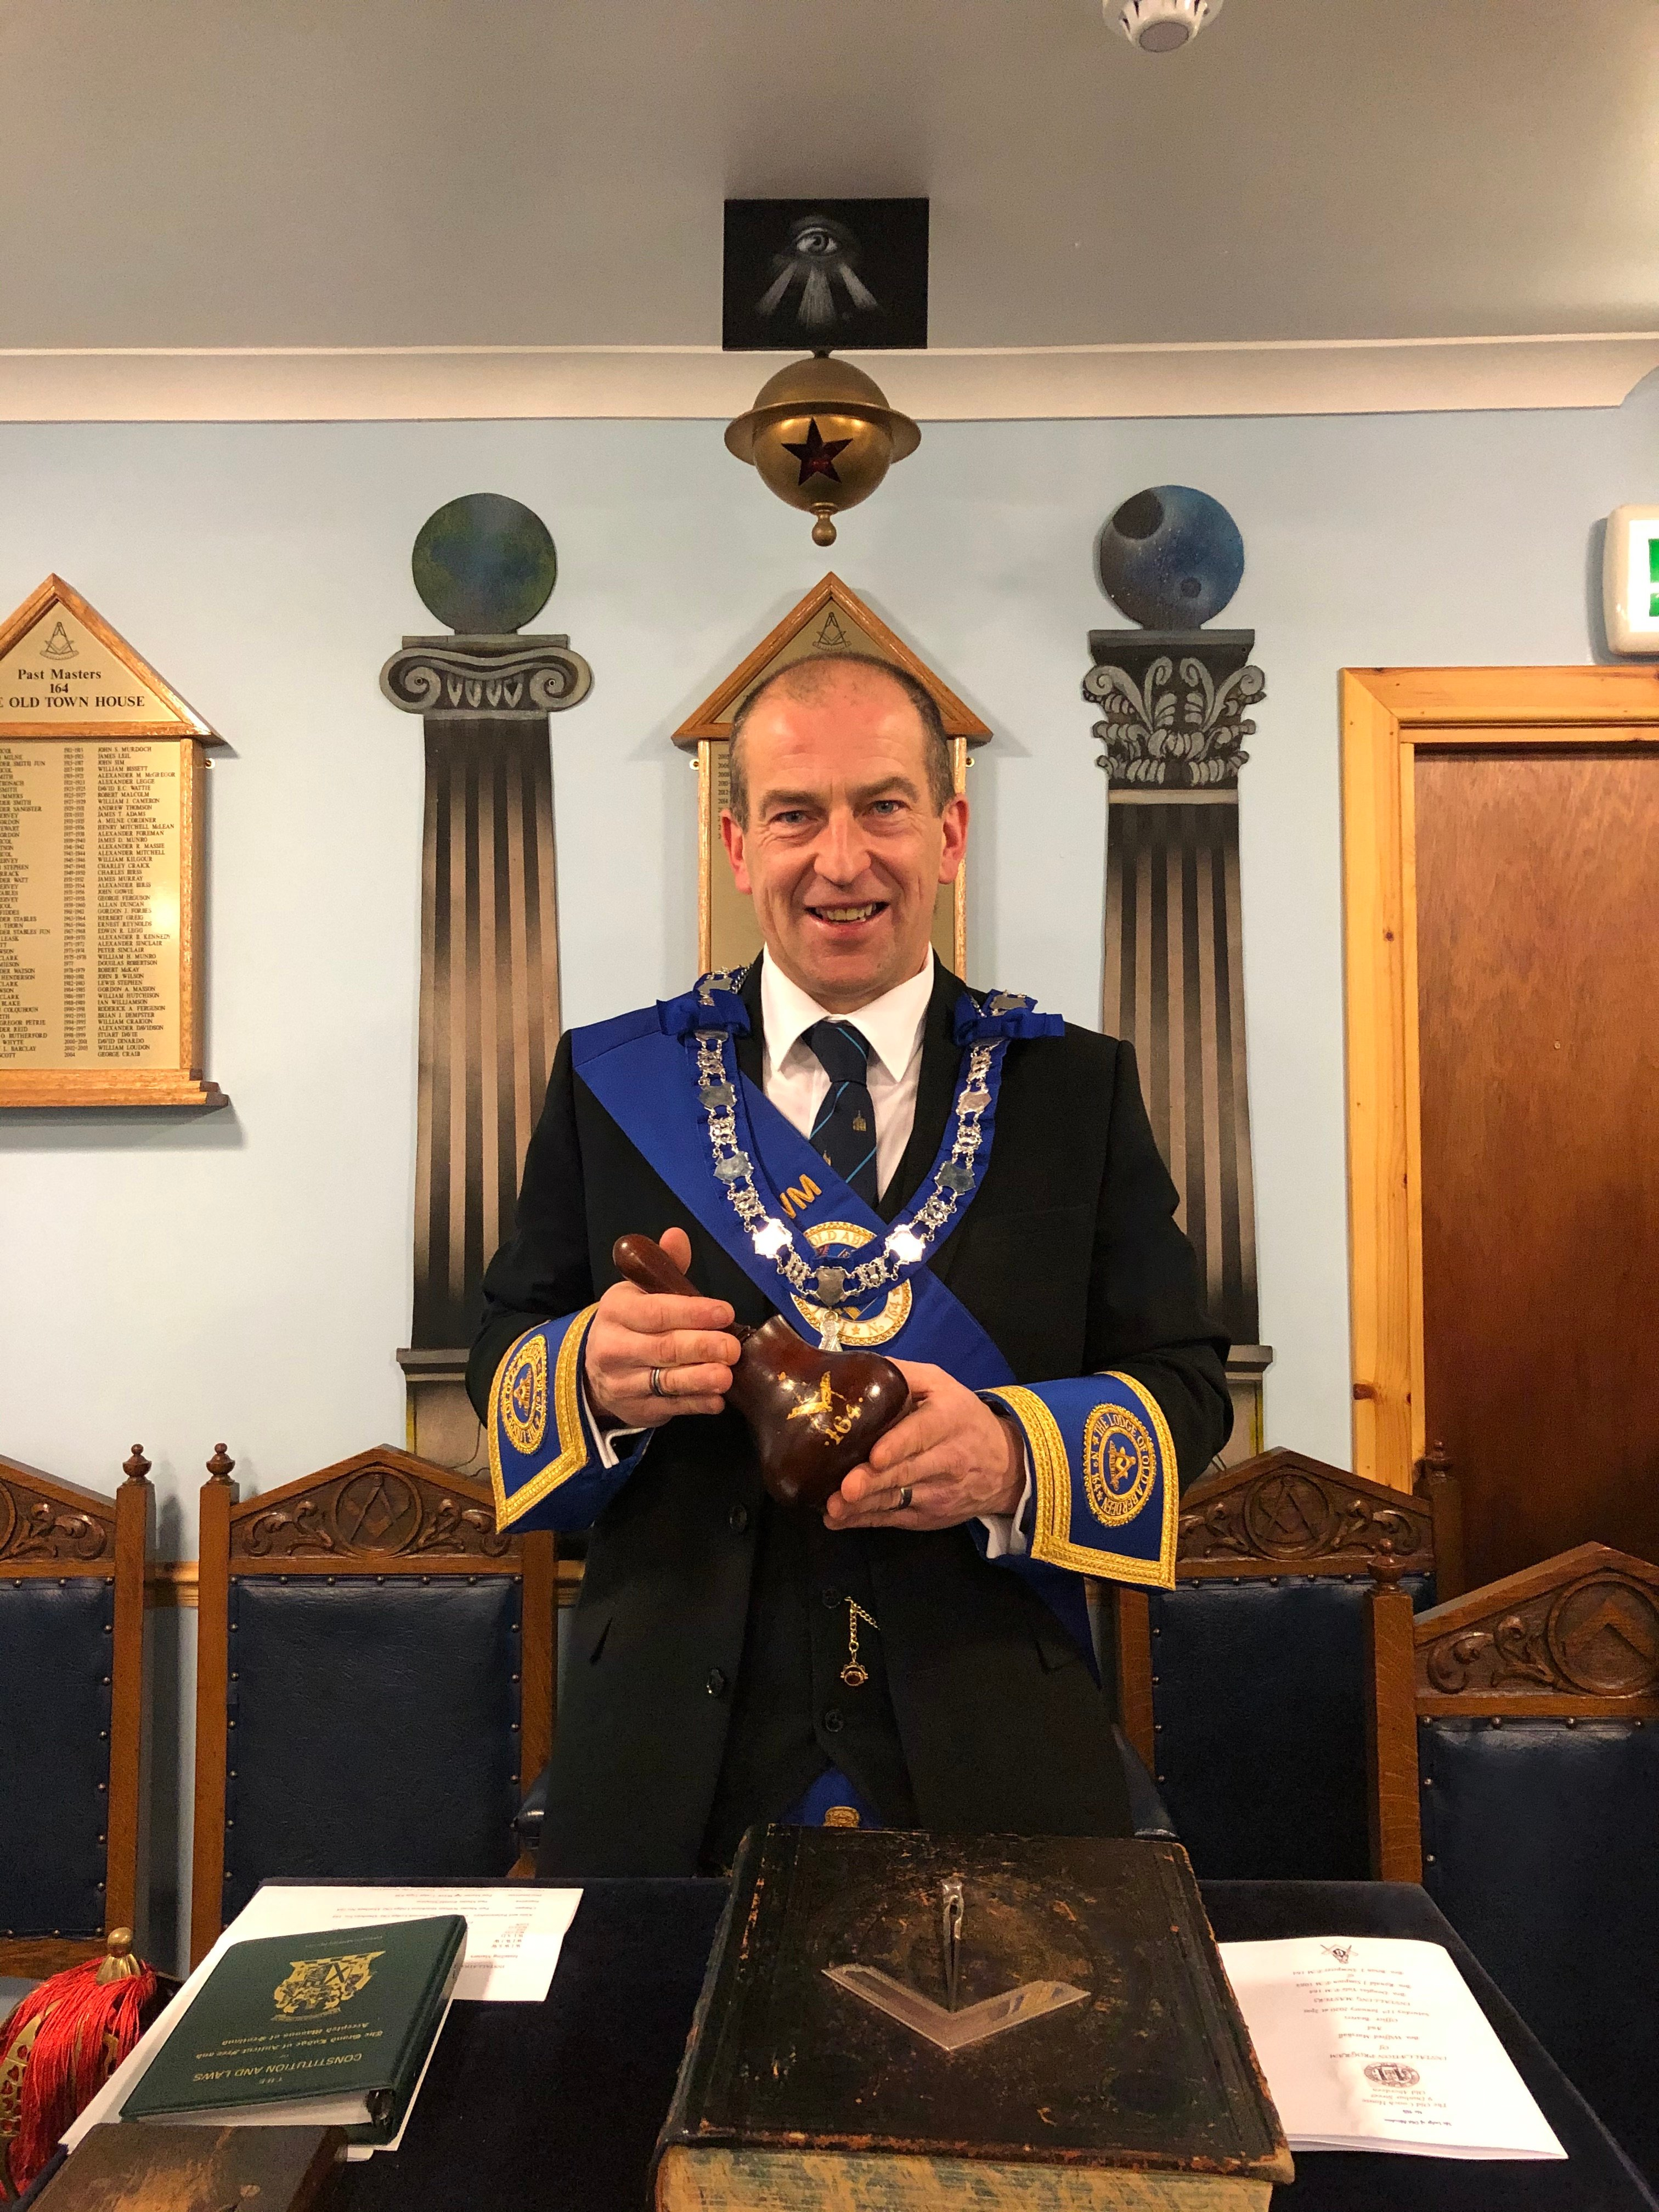 The Right Worshipful Master Bro. Jim Moir